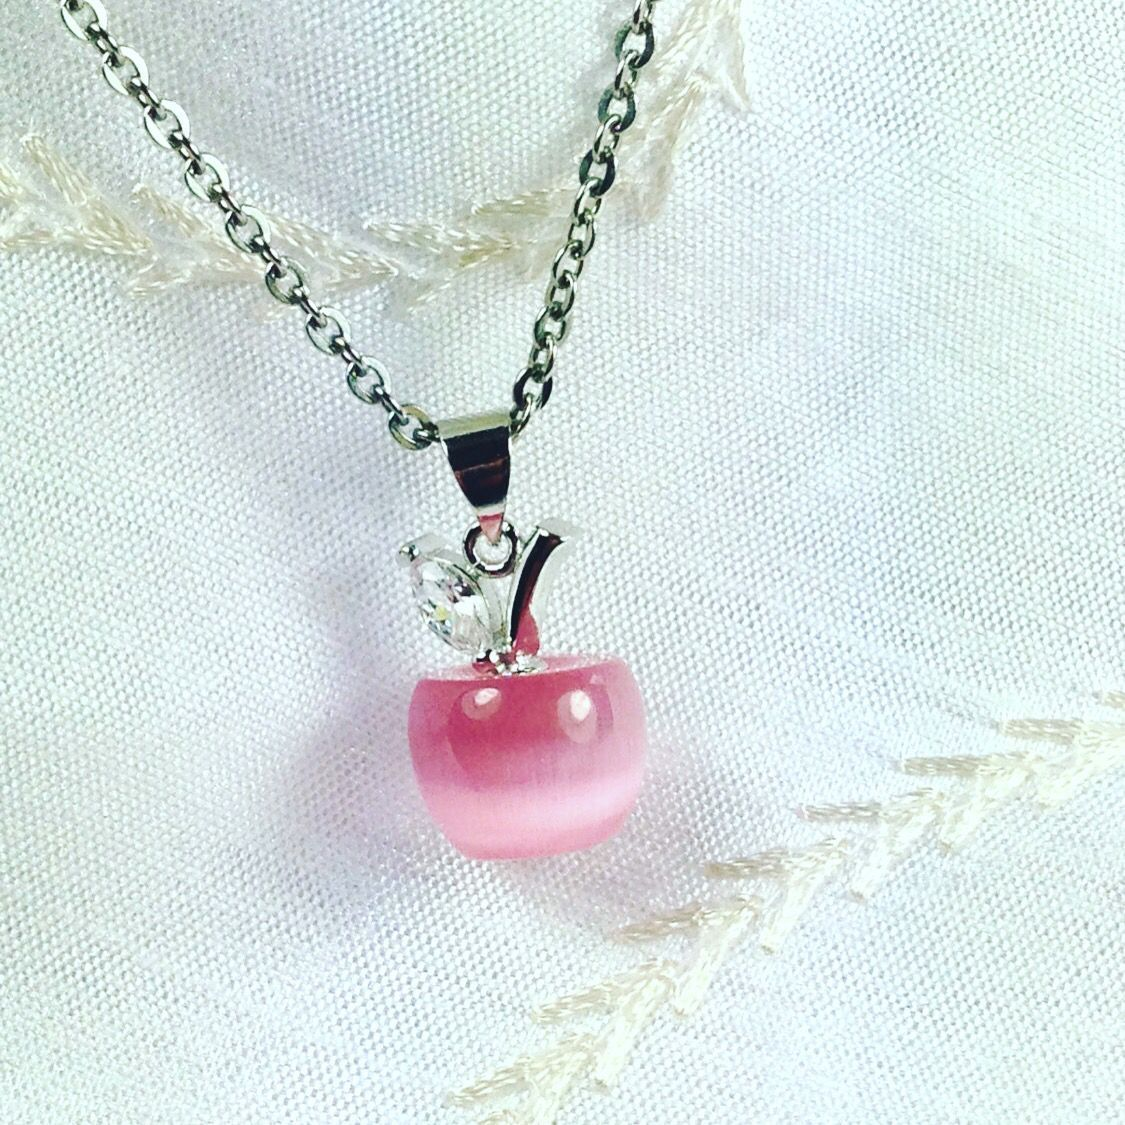 Cat&#39;s Eye #Apple #Necklace w/ #Crystal Leaf #Handmade #NorthCoastCottage #Jewelry  http:// buff.ly/2qndMTk  &nbsp;   #pink #MothersDay #shopping #gift<br>http://pic.twitter.com/lKxzMgKwZG